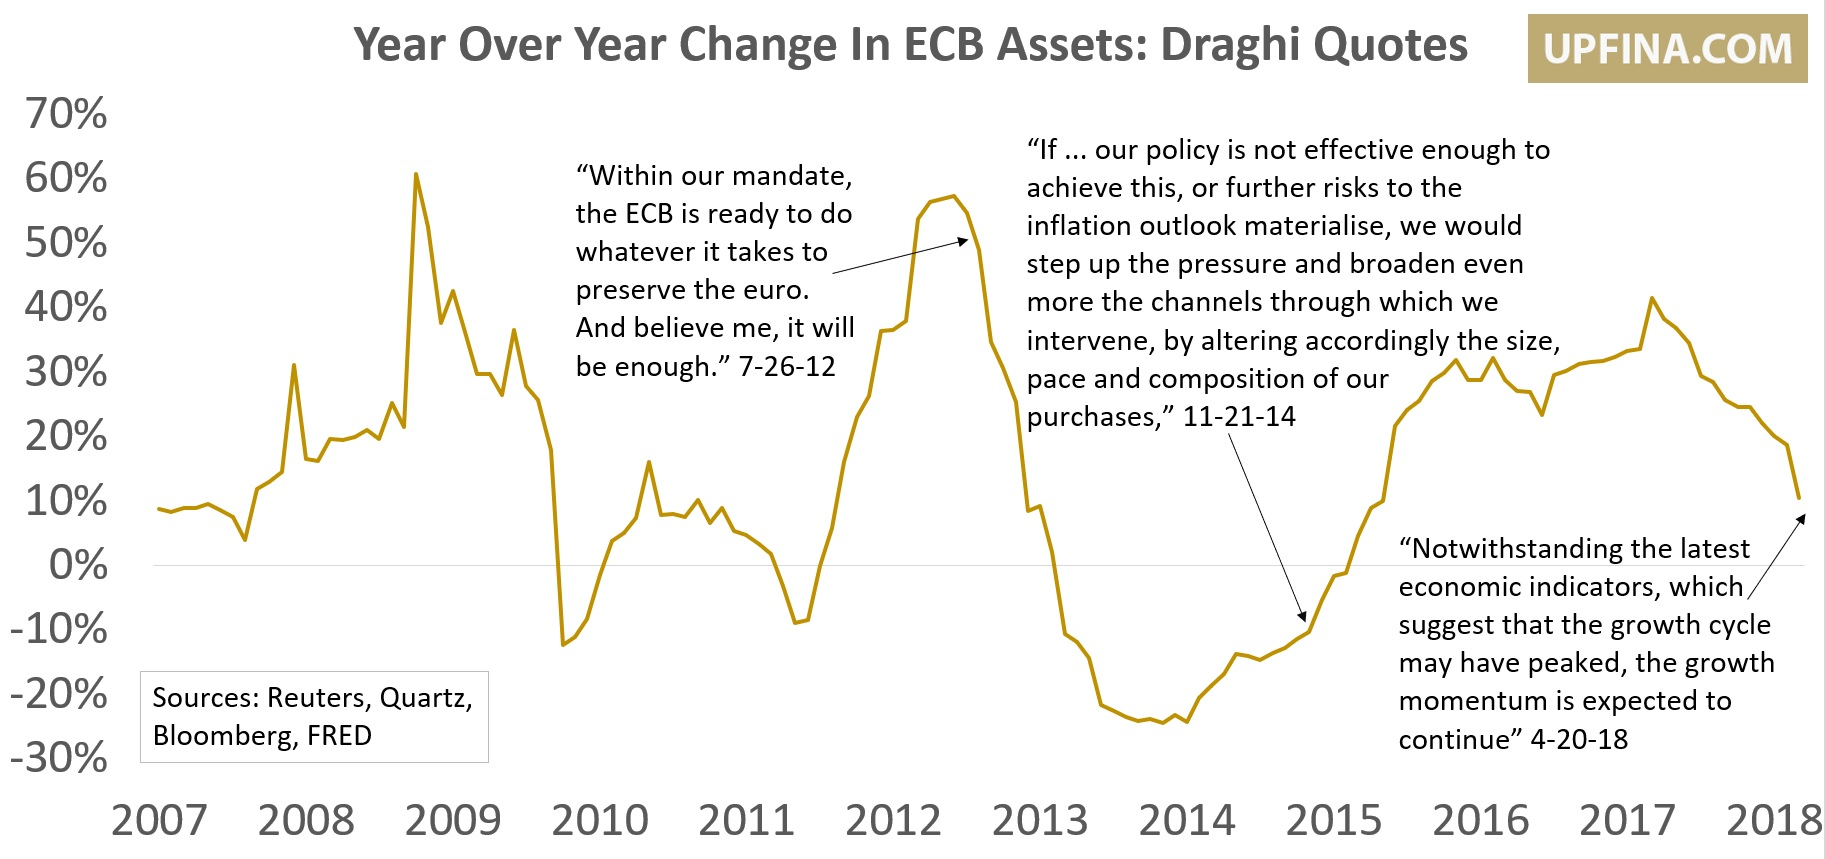 Draghi Quotes